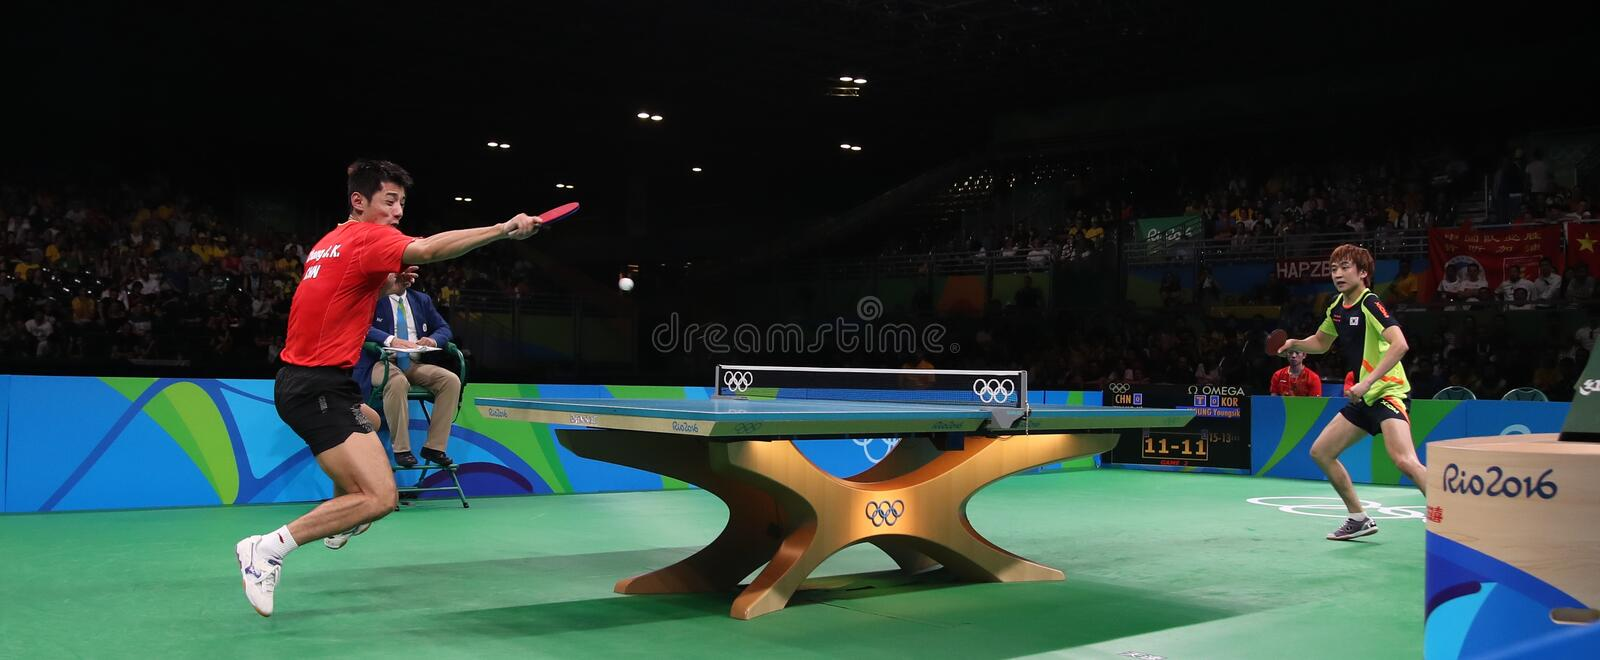 Zhang Jike playing table tennis at the Olympic Games in Rio 2016. Zhang Jike from China silver medal in table tennis at the Olympic Games in Rio 2016 royalty free stock photography